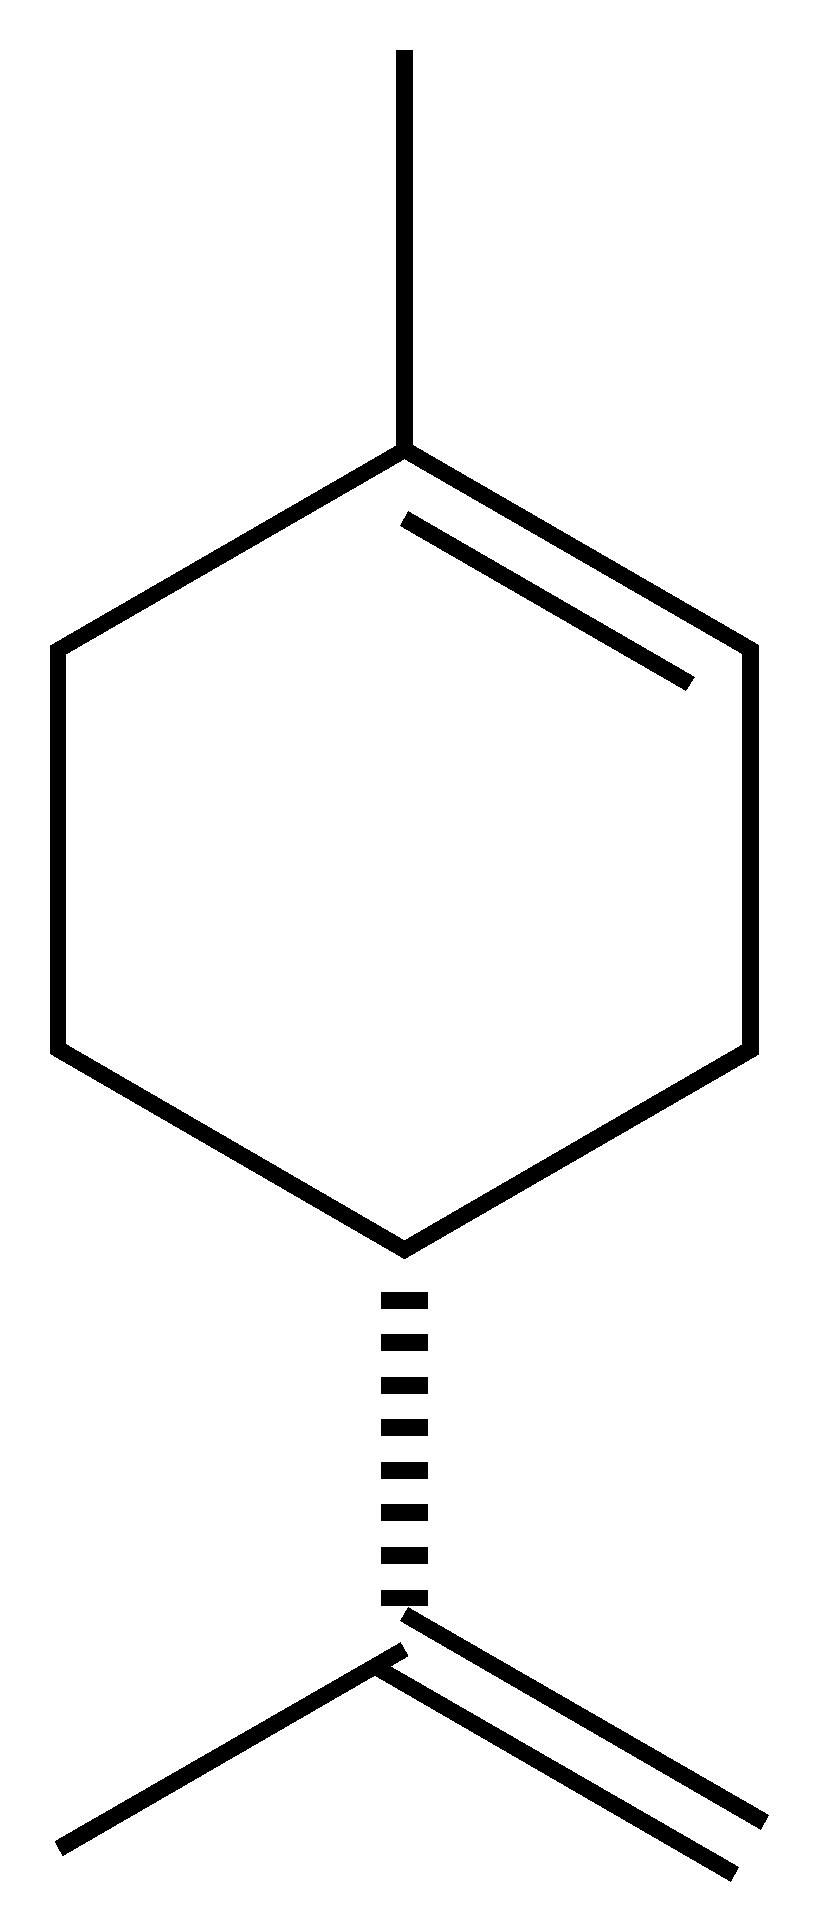 Limonene is a cyclic terpene, a type of hydrocarbon.